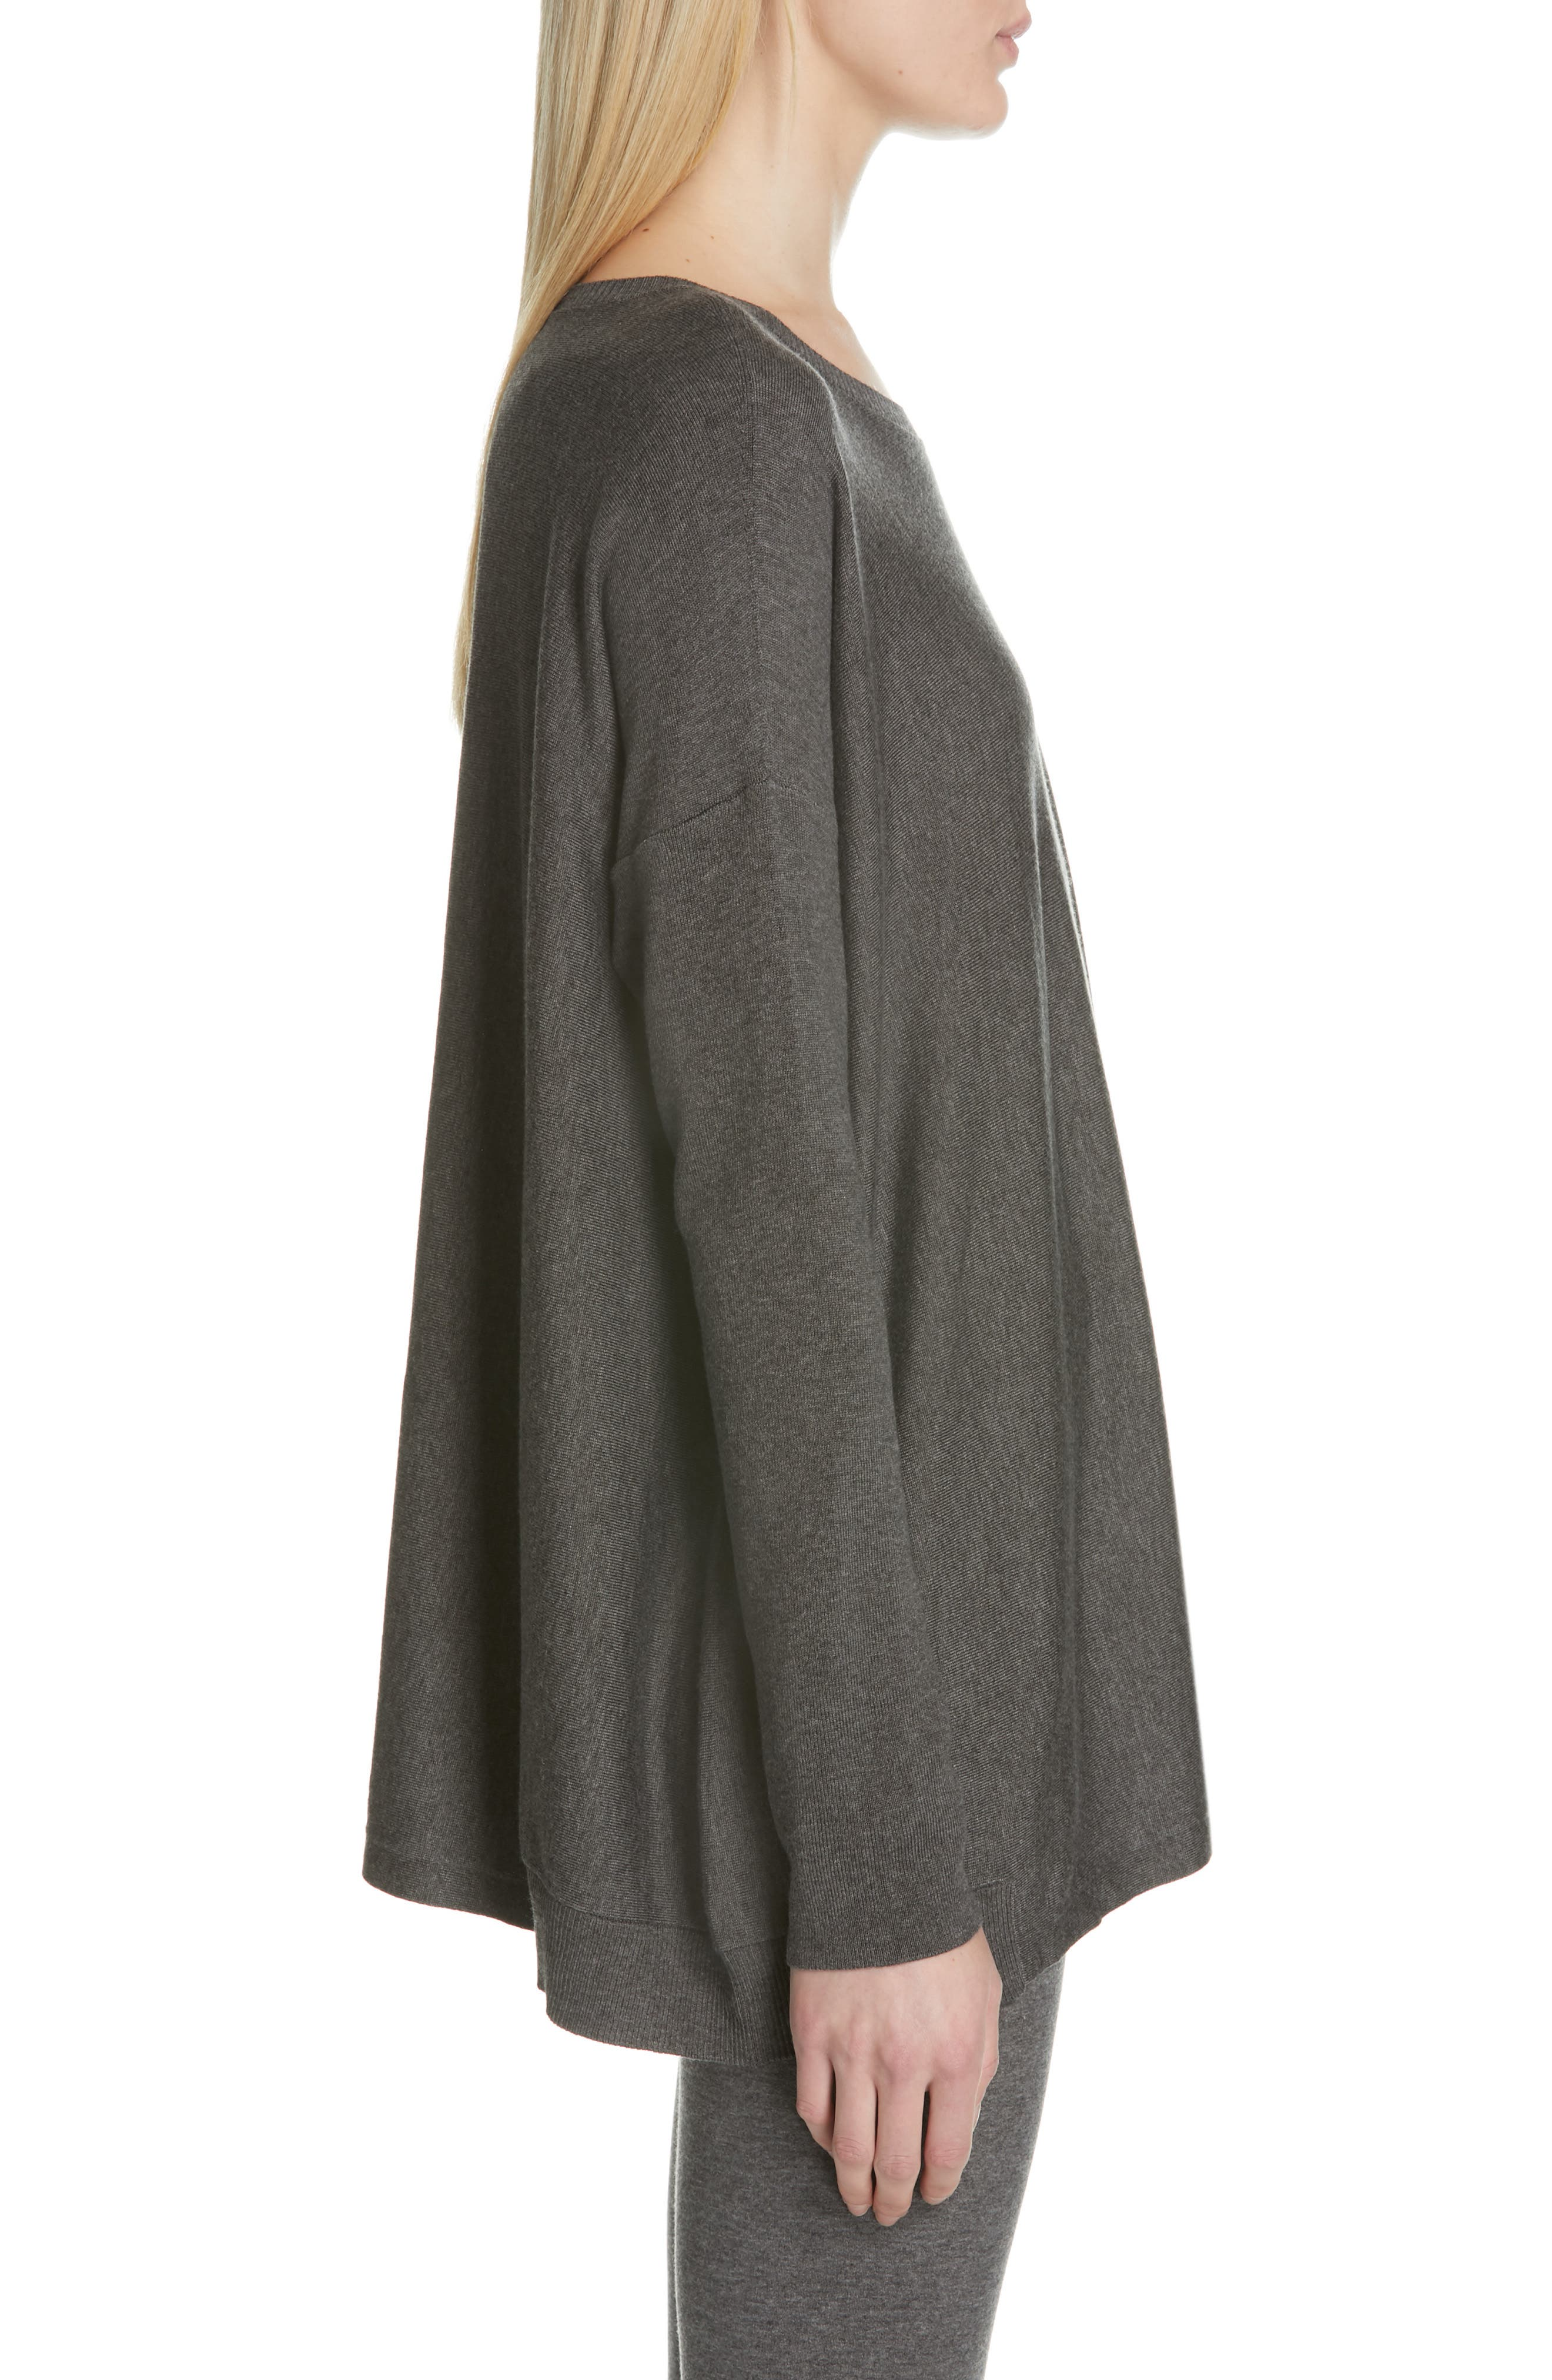 EILEEN FISHER, Tencel<sup>®</sup> Lyocell Blend Sweater, Alternate thumbnail 3, color, 030